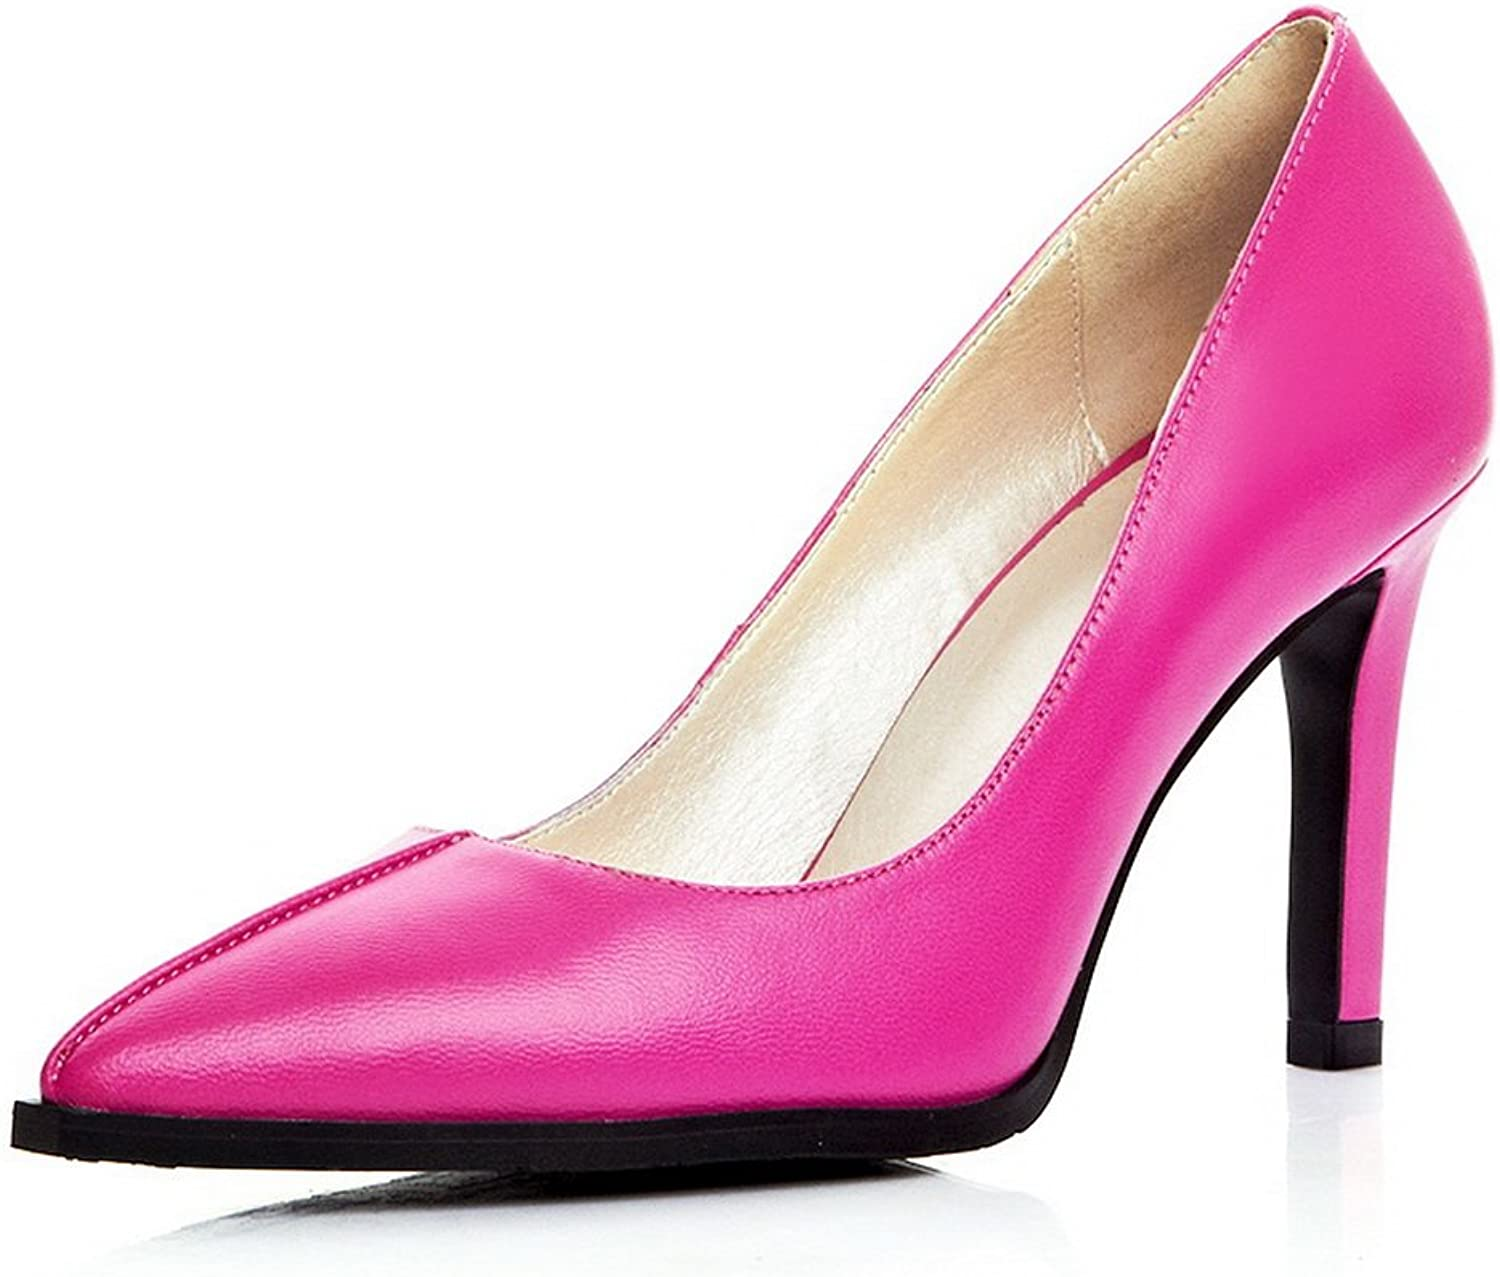 AdeeSu Womens Light-Weight Slip-Resistant Pointed-Toe Solid Pleather Pumps shoes SDC03957